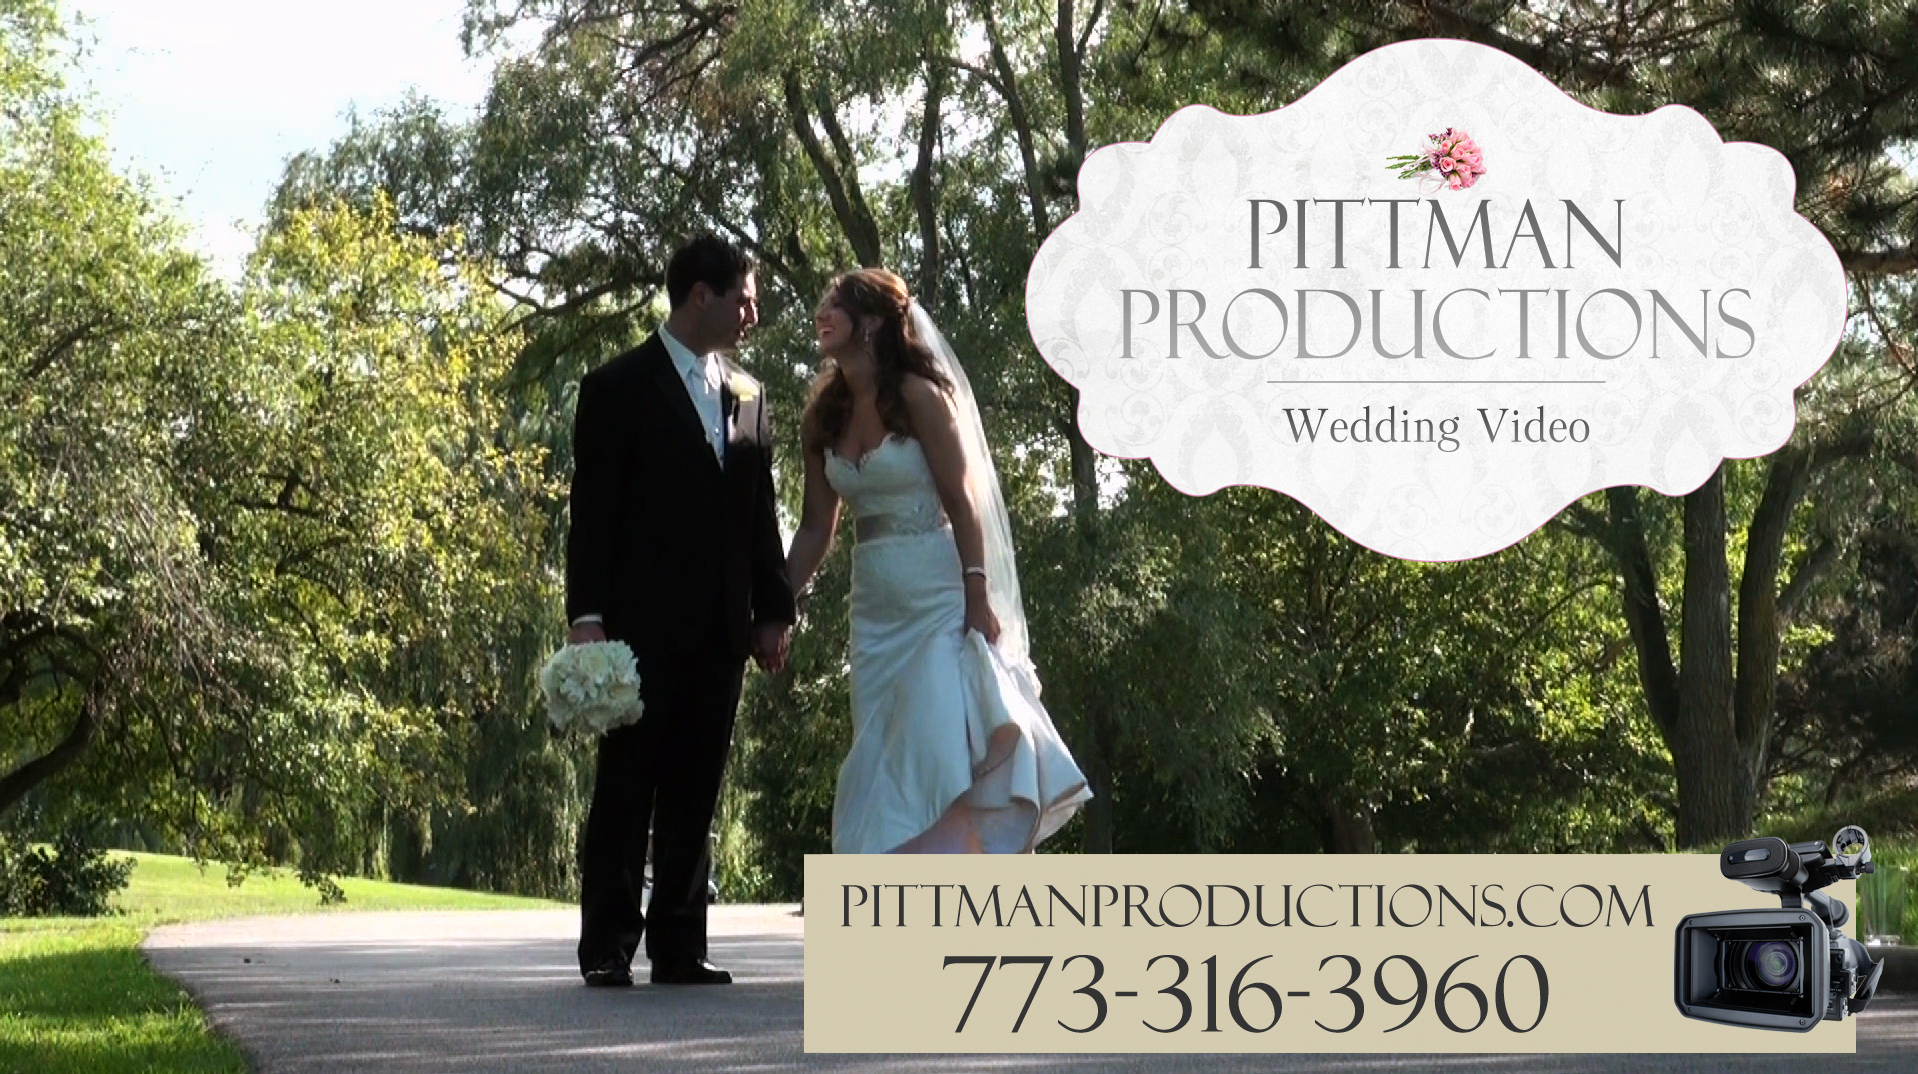 Pittman-productions-wedding-video-lincolnshire-il.original.original